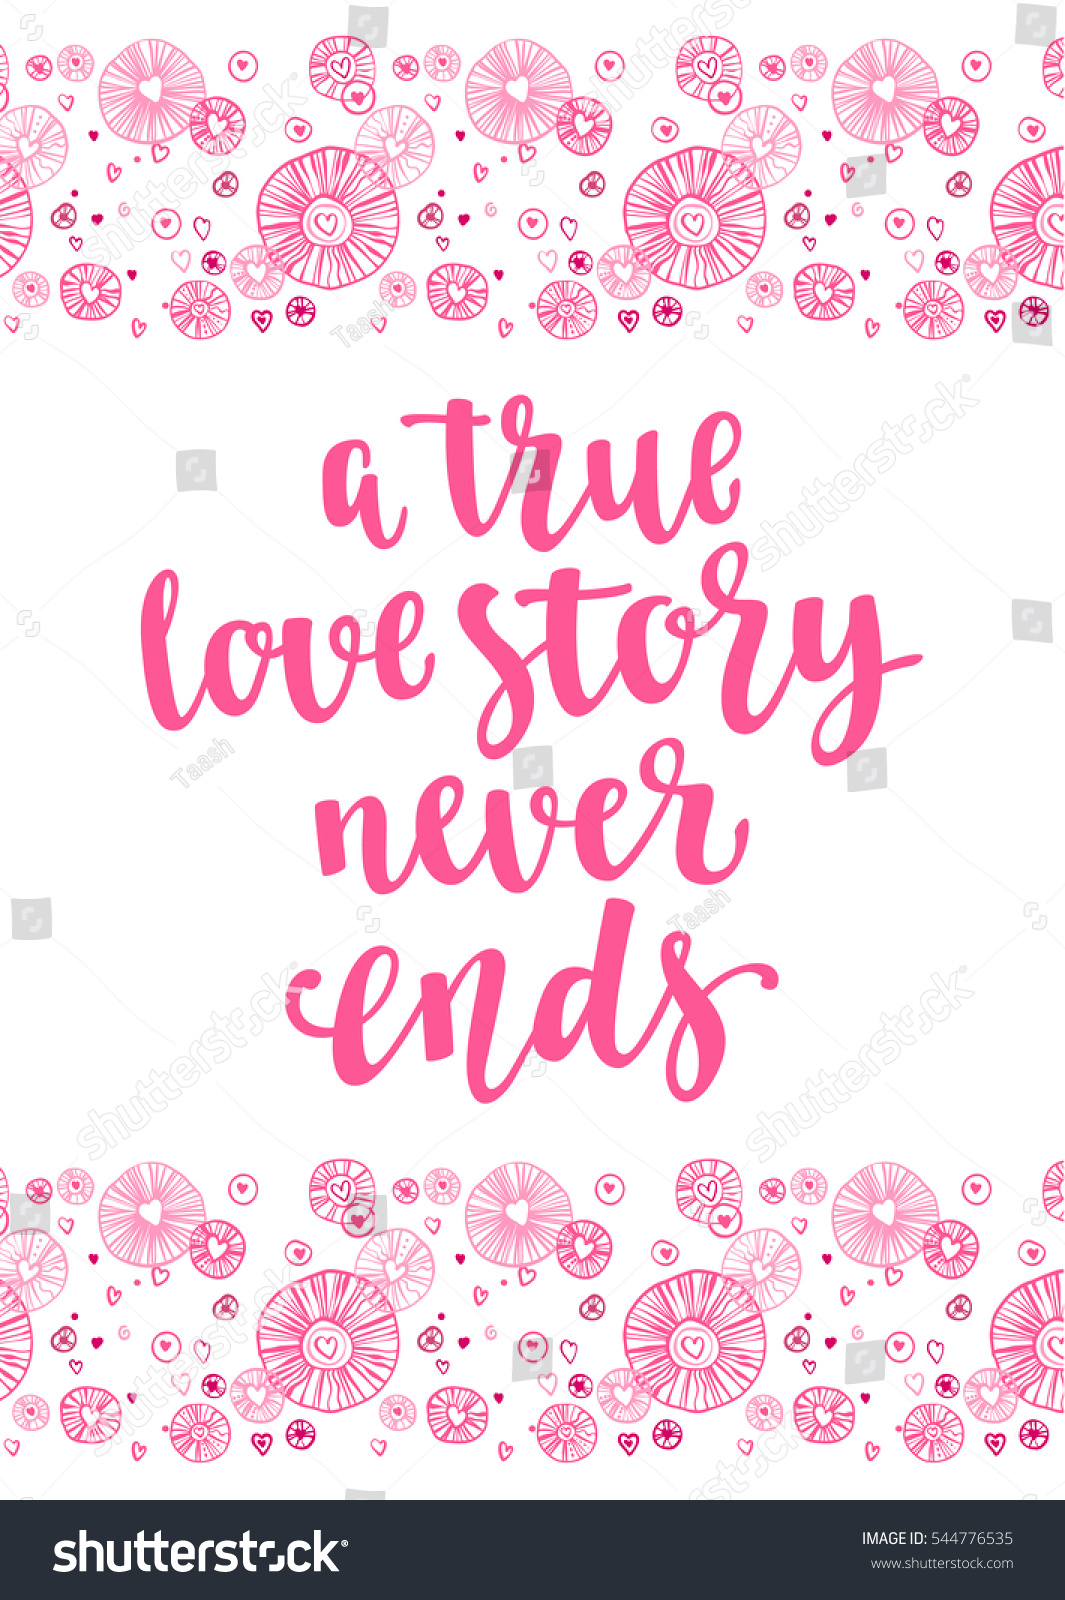 valentines day quote romantic saying for posters cards or leaflet vector phrase on